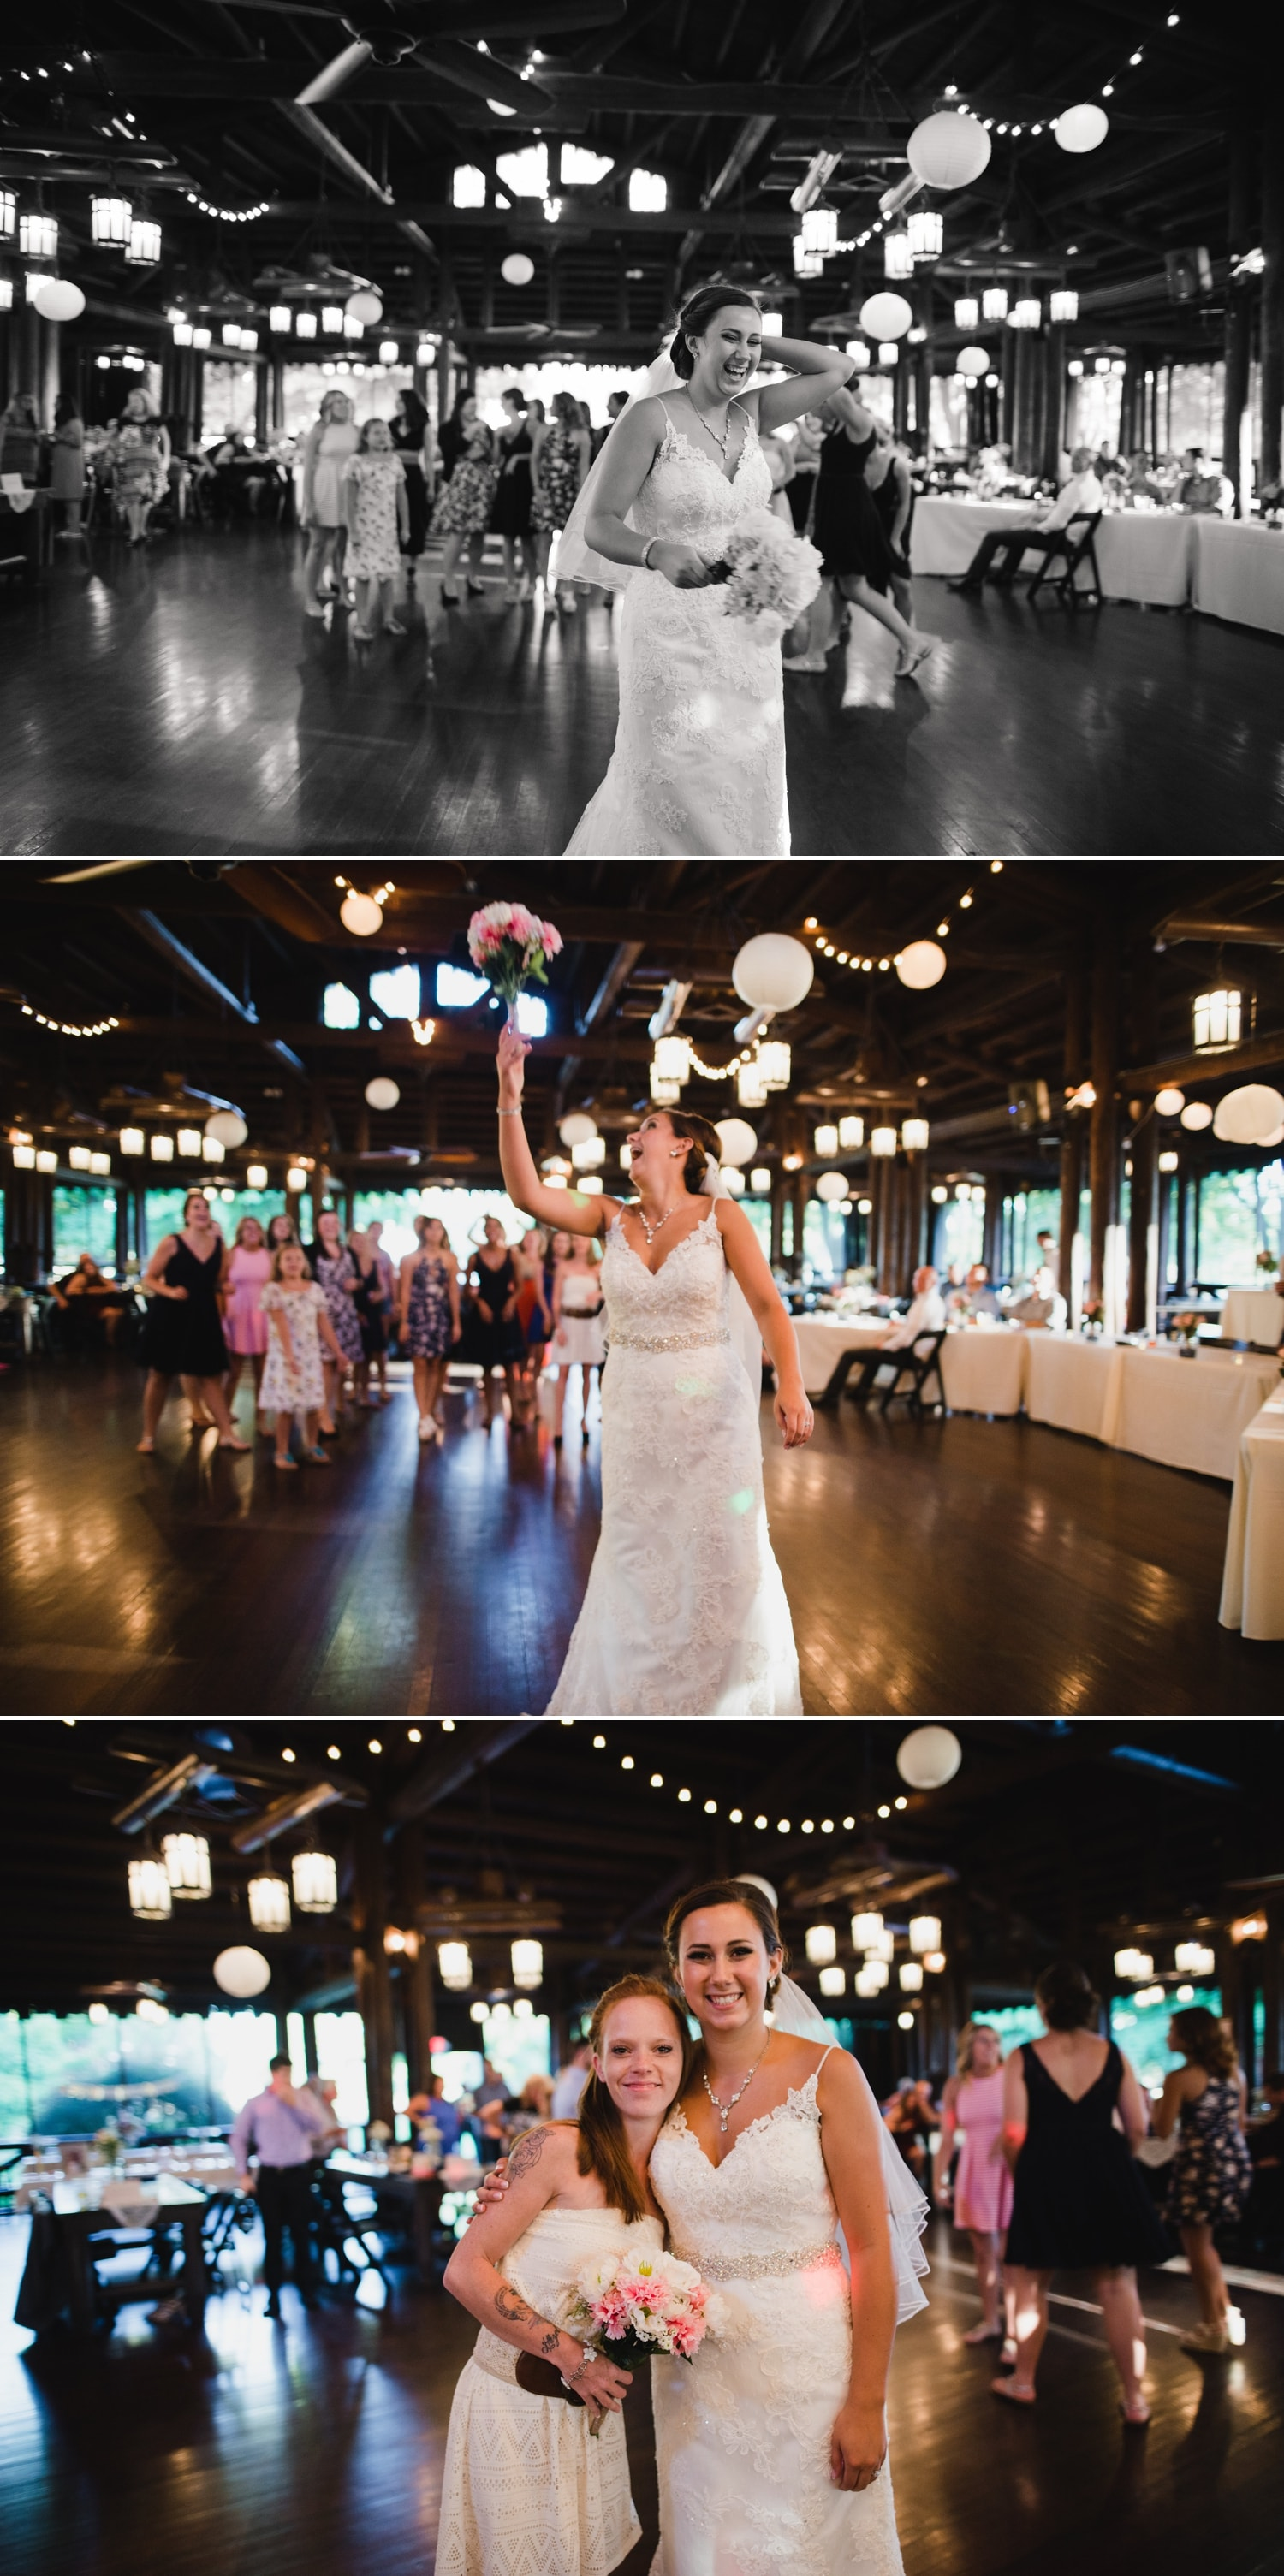 Heckman Wedding Blog 21.jpg